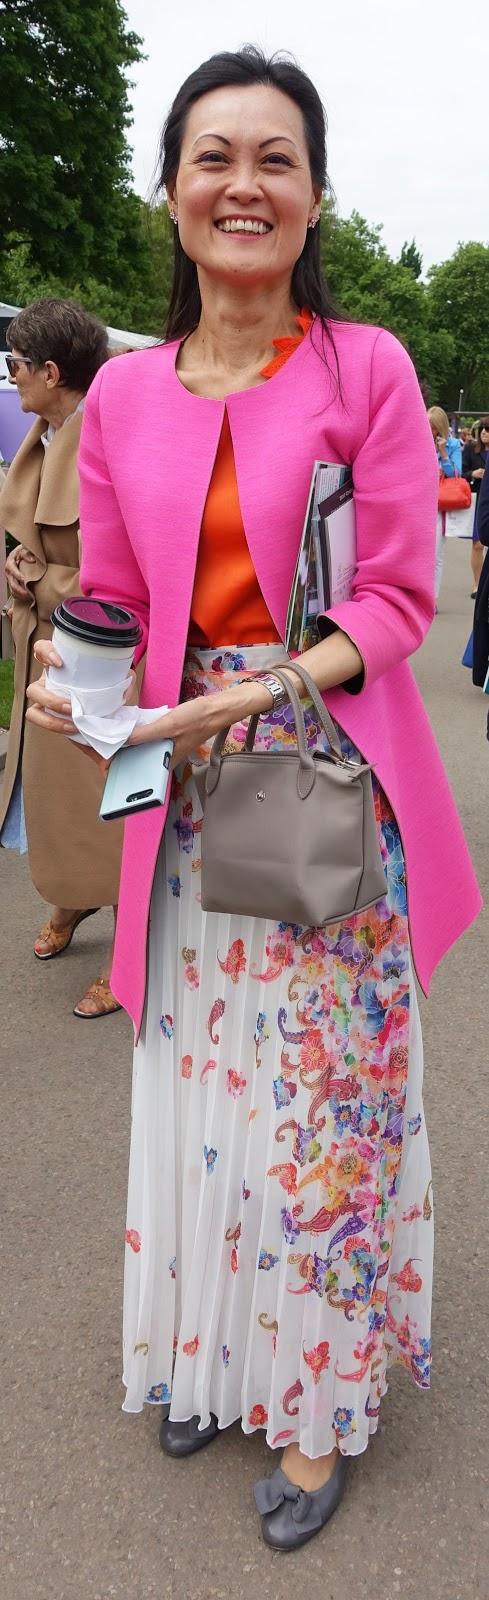 Fantastic styling of a long skirt, orange top and pink jacket by a visitor to the Chelsea Flower Show 2017